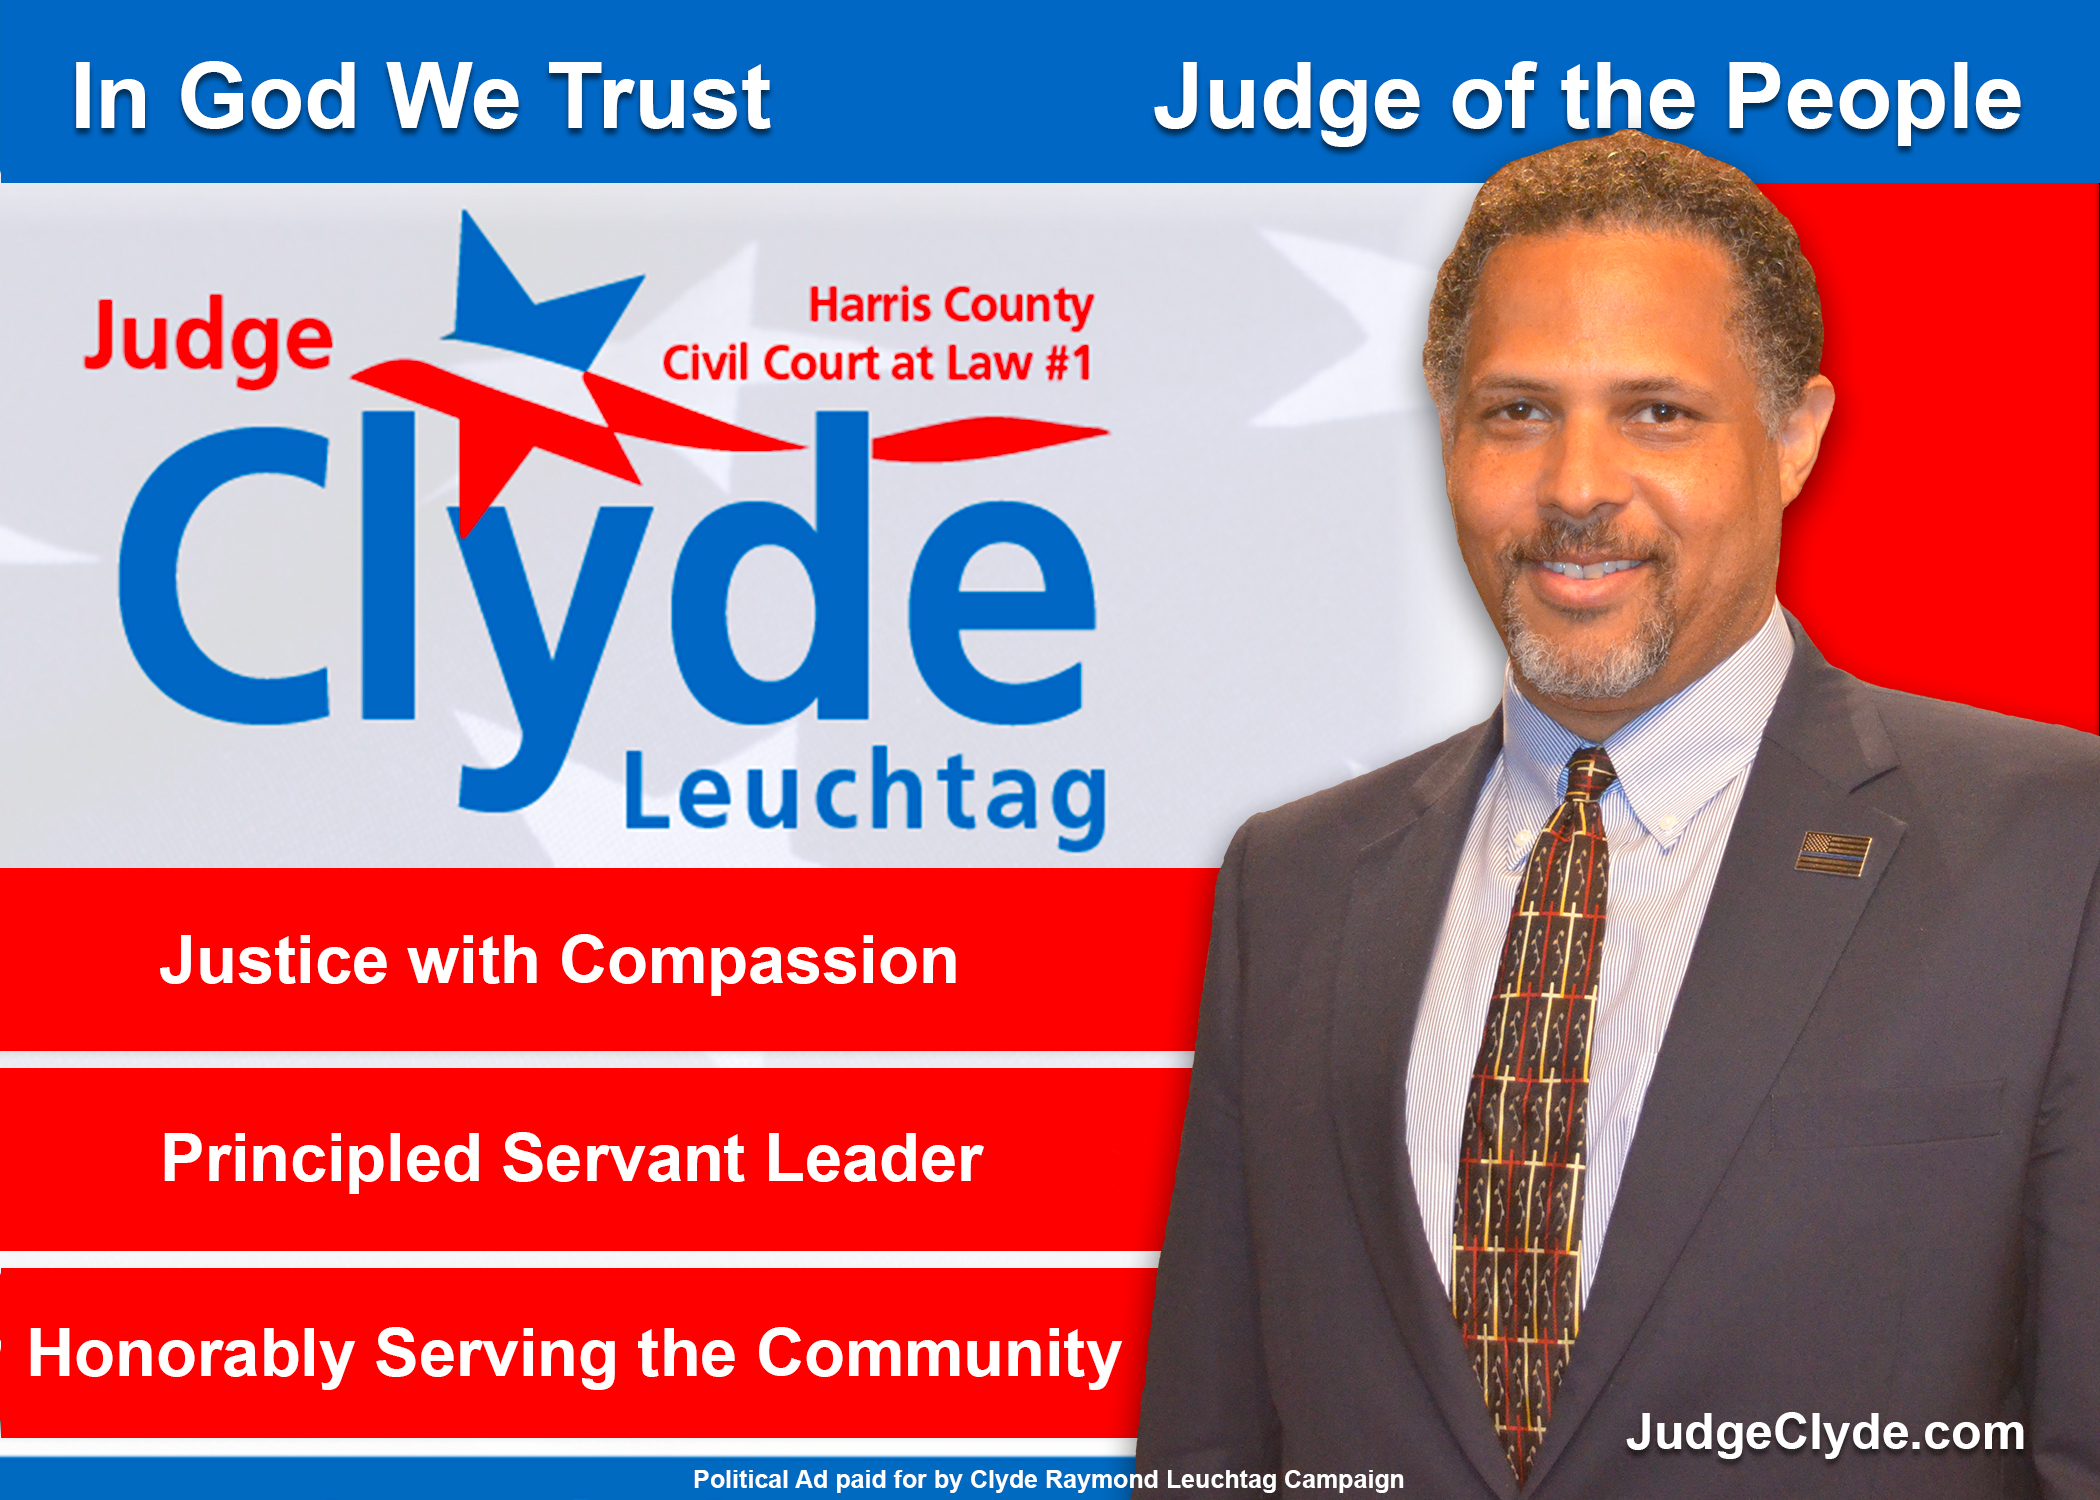 Re-Elect Judge Clyde Raymond Leuchtag to County Civil Court at Law #1 Houston